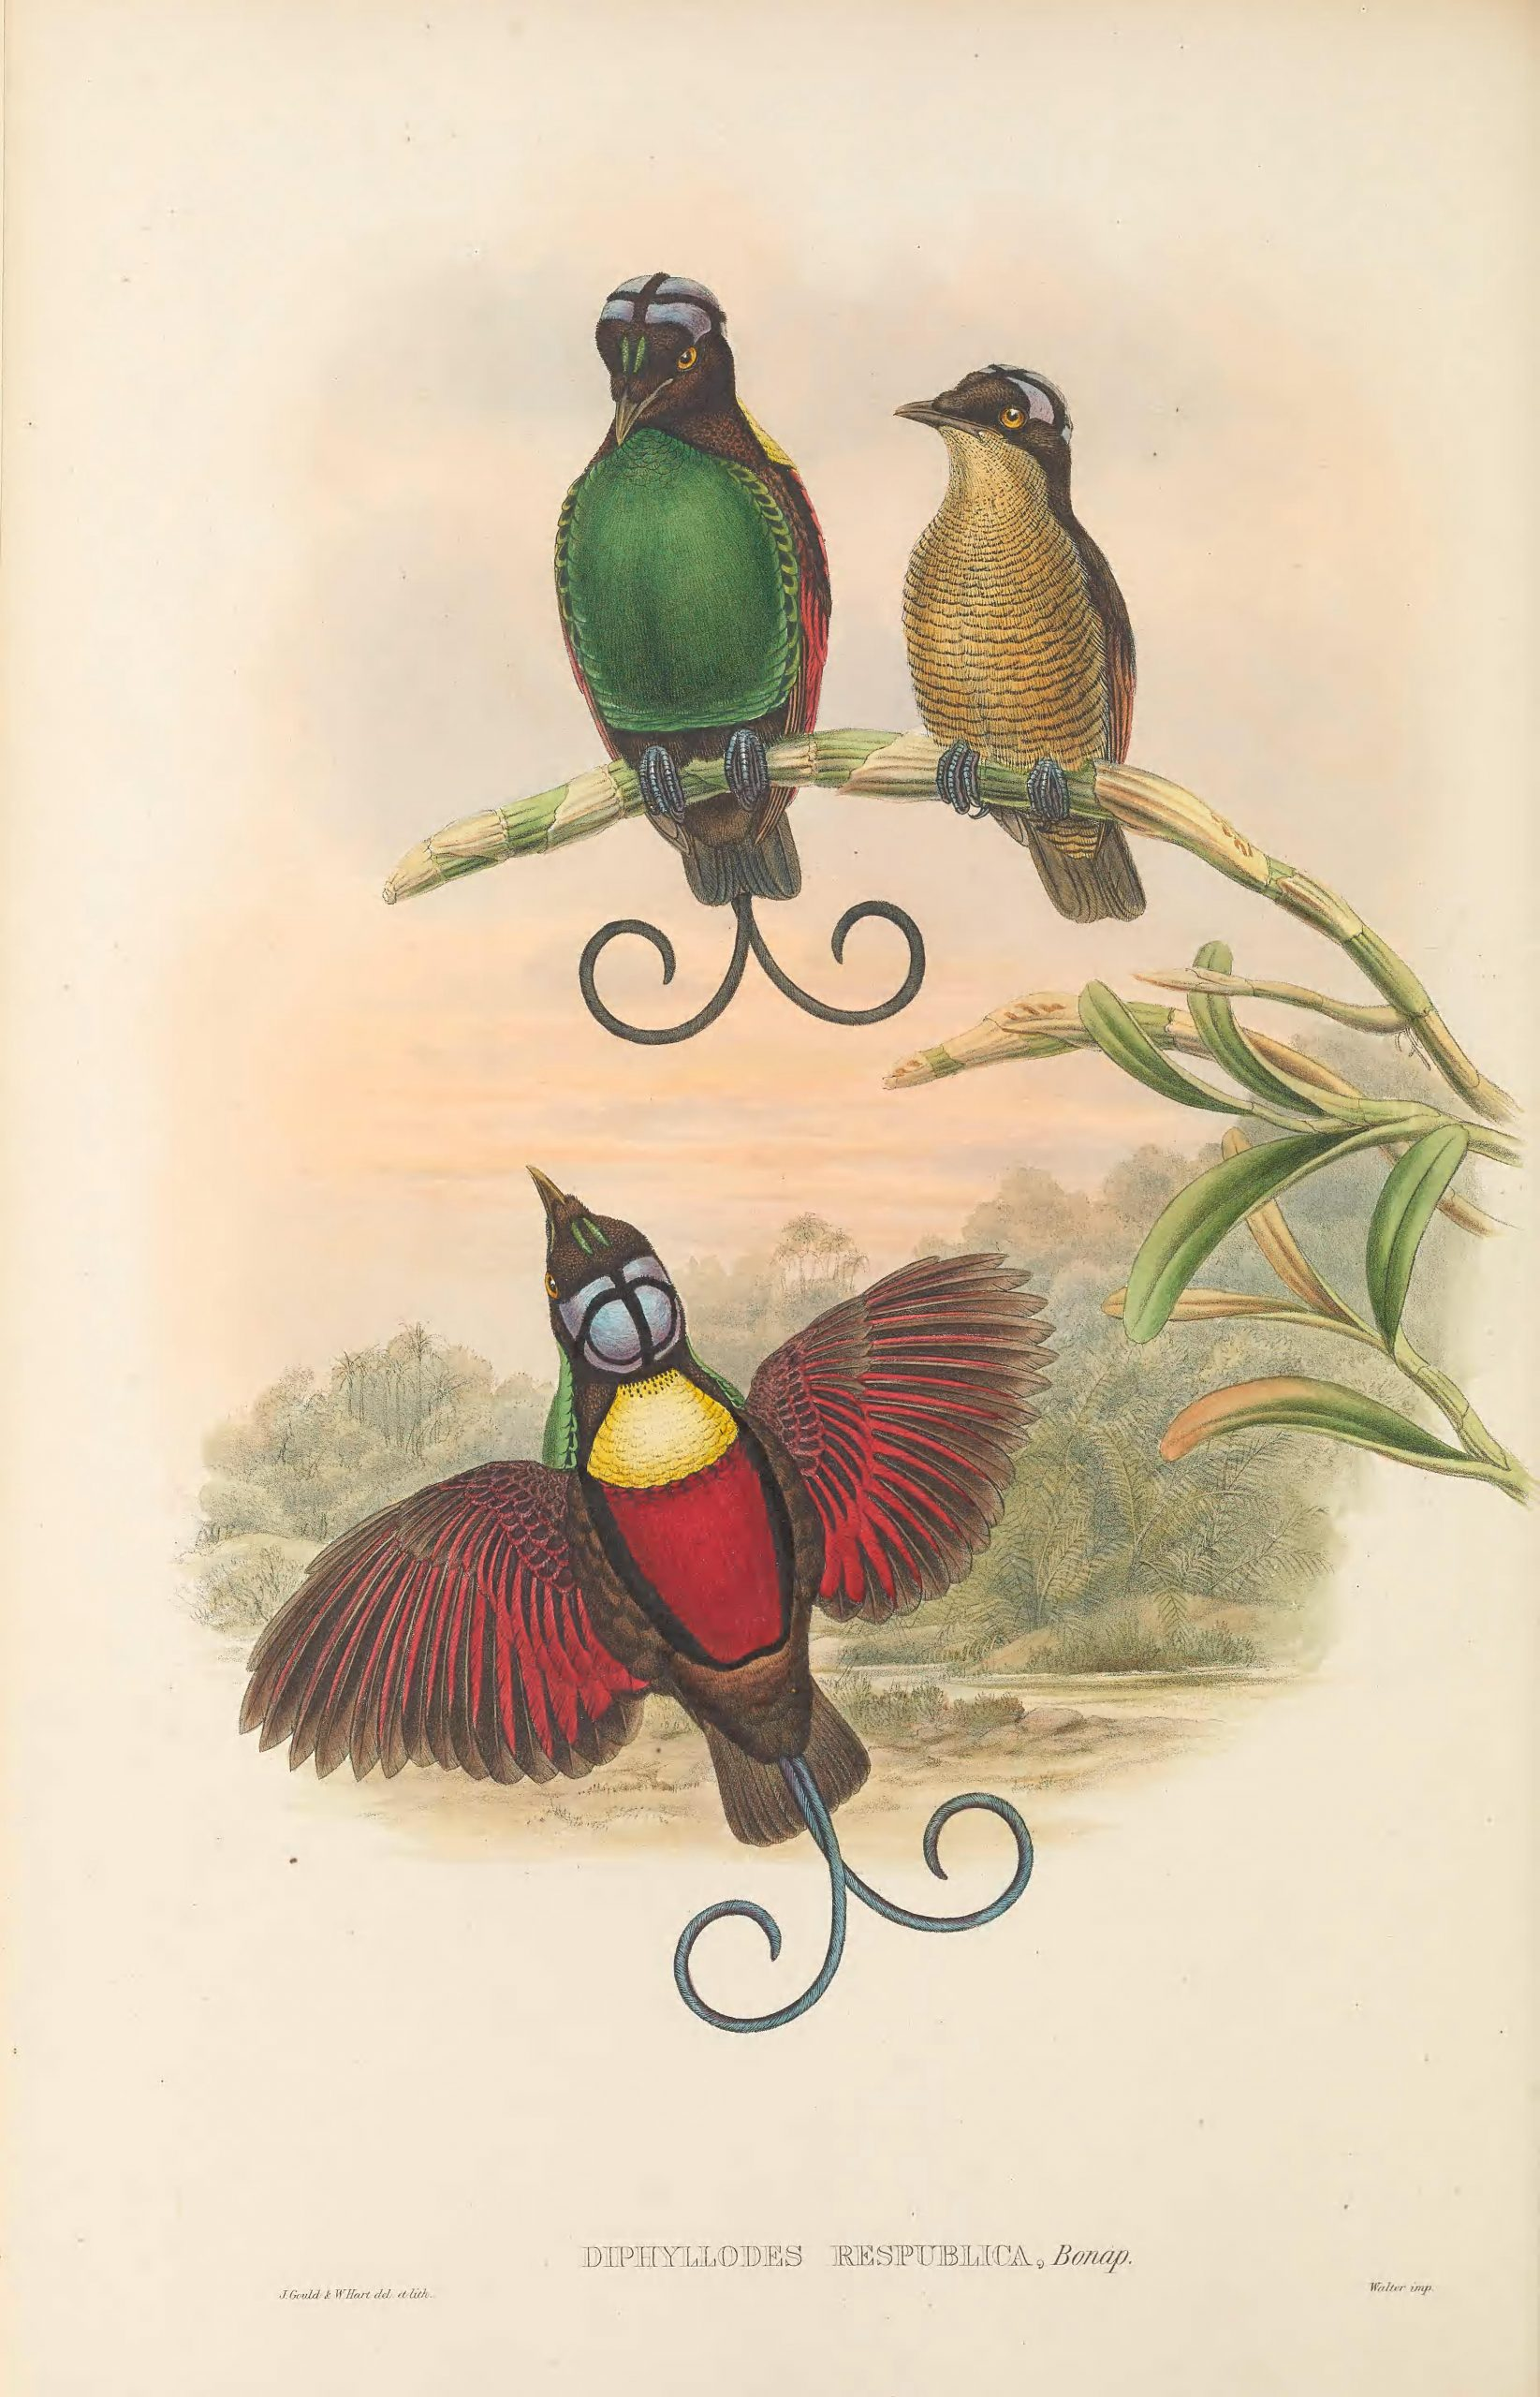 three birds, one red and in flights, one green, one yellow, the latter two seated on a branch